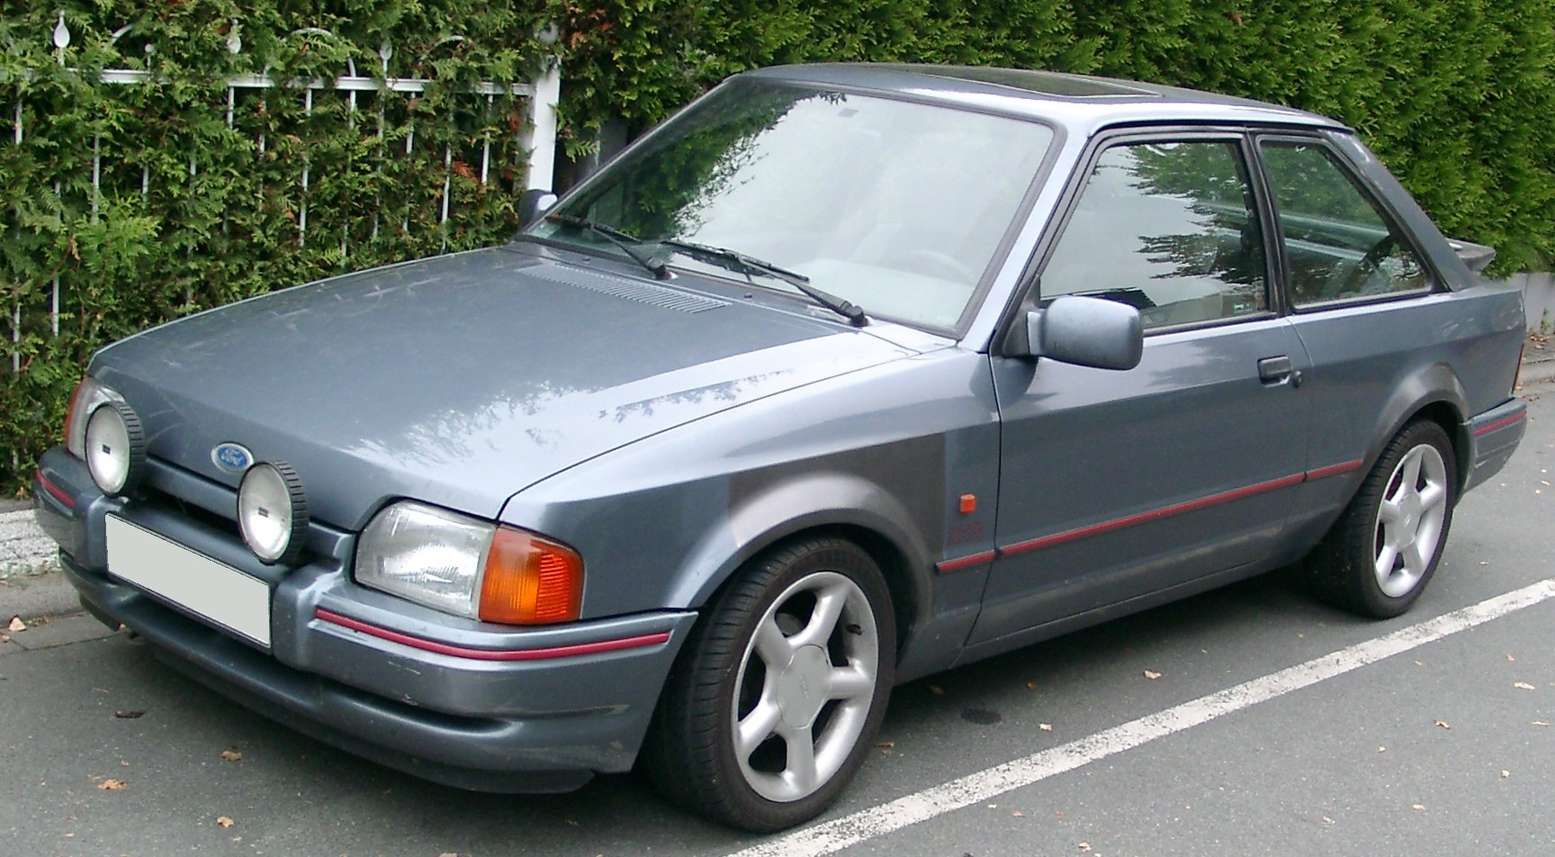 Ford Escort XR3 #7493975